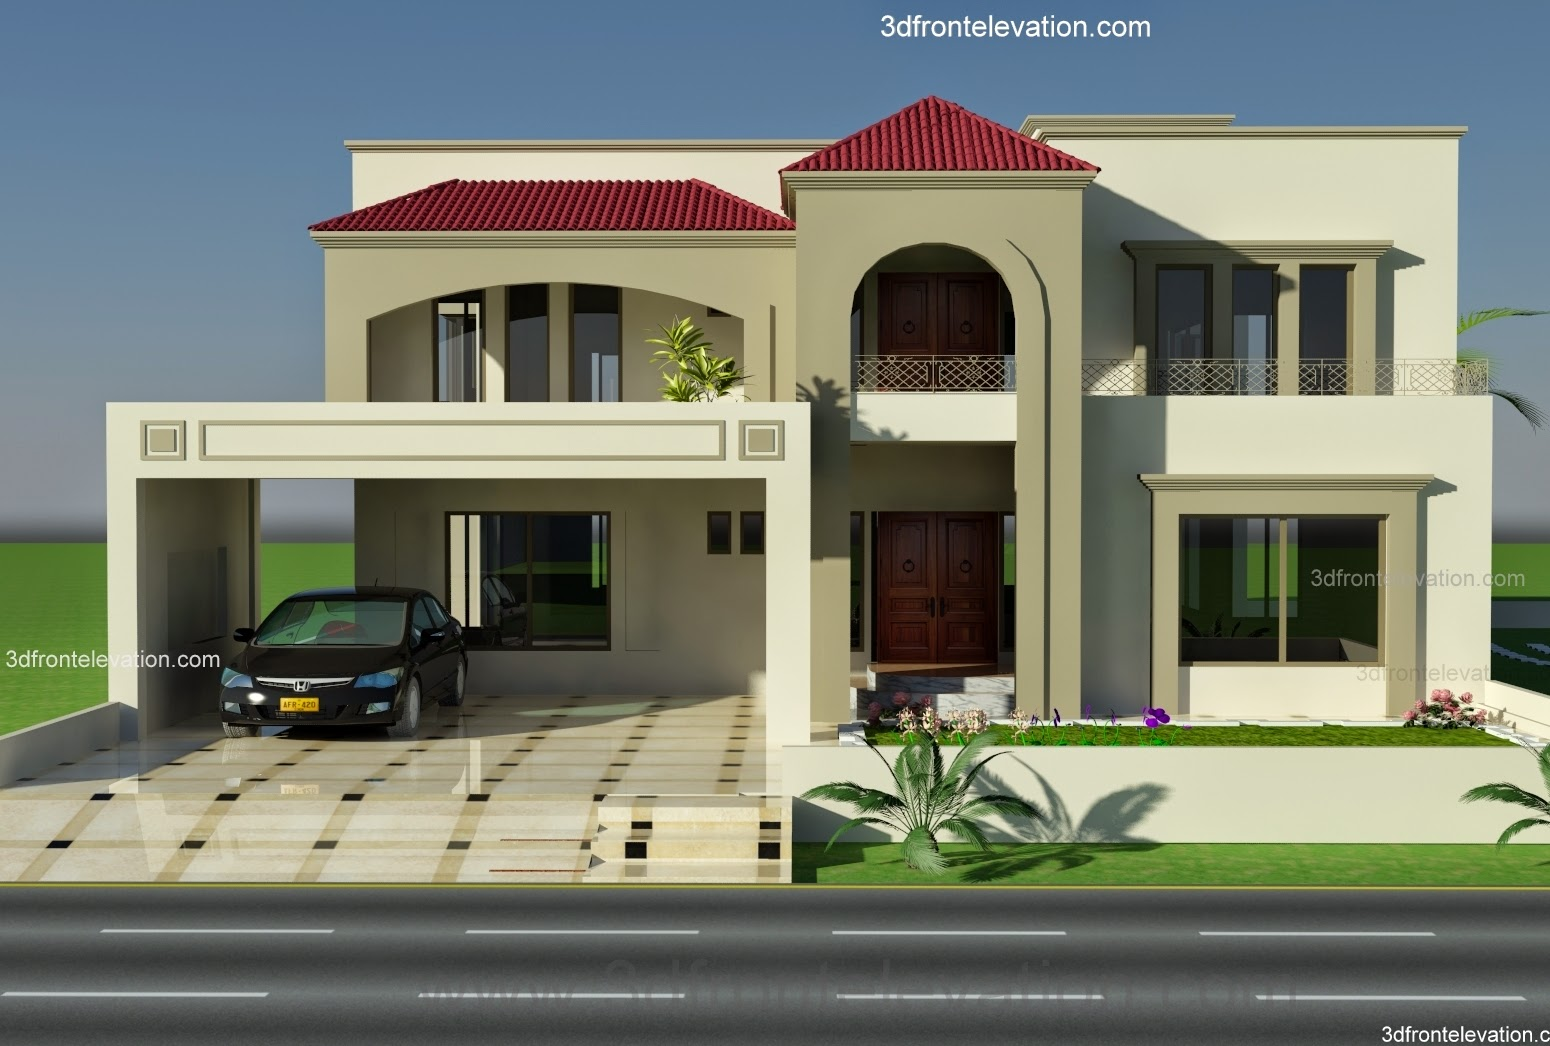 3d front 1 kanal plot house design europen style in bahria town lahore pakistan - Home design pic ...